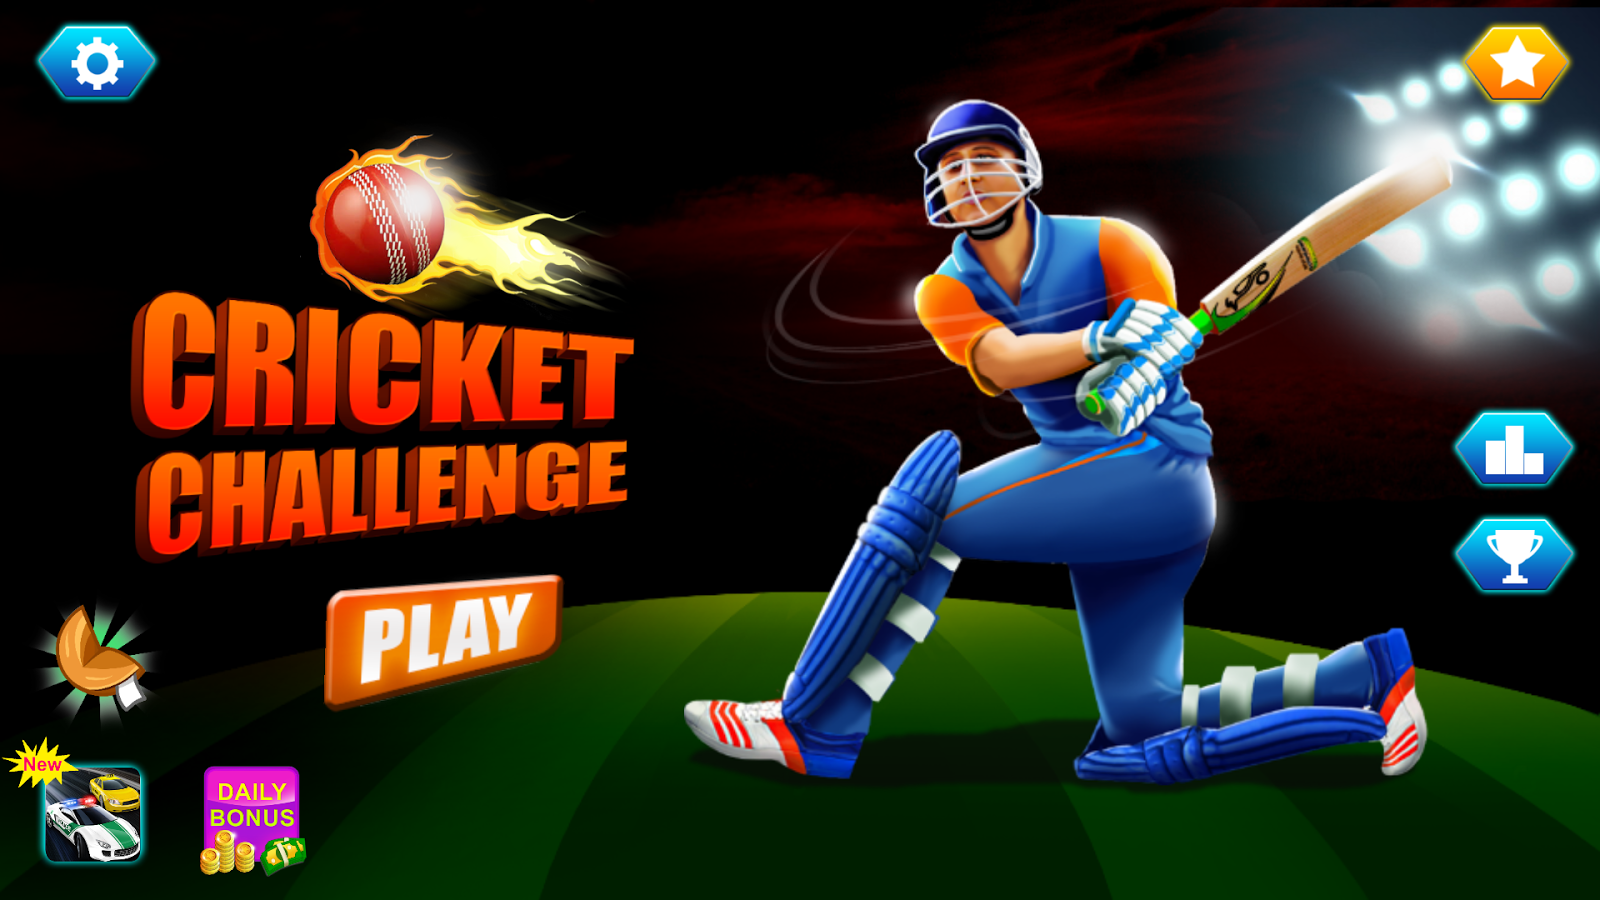 Cricket t20 2017 multiplayer game screenshot